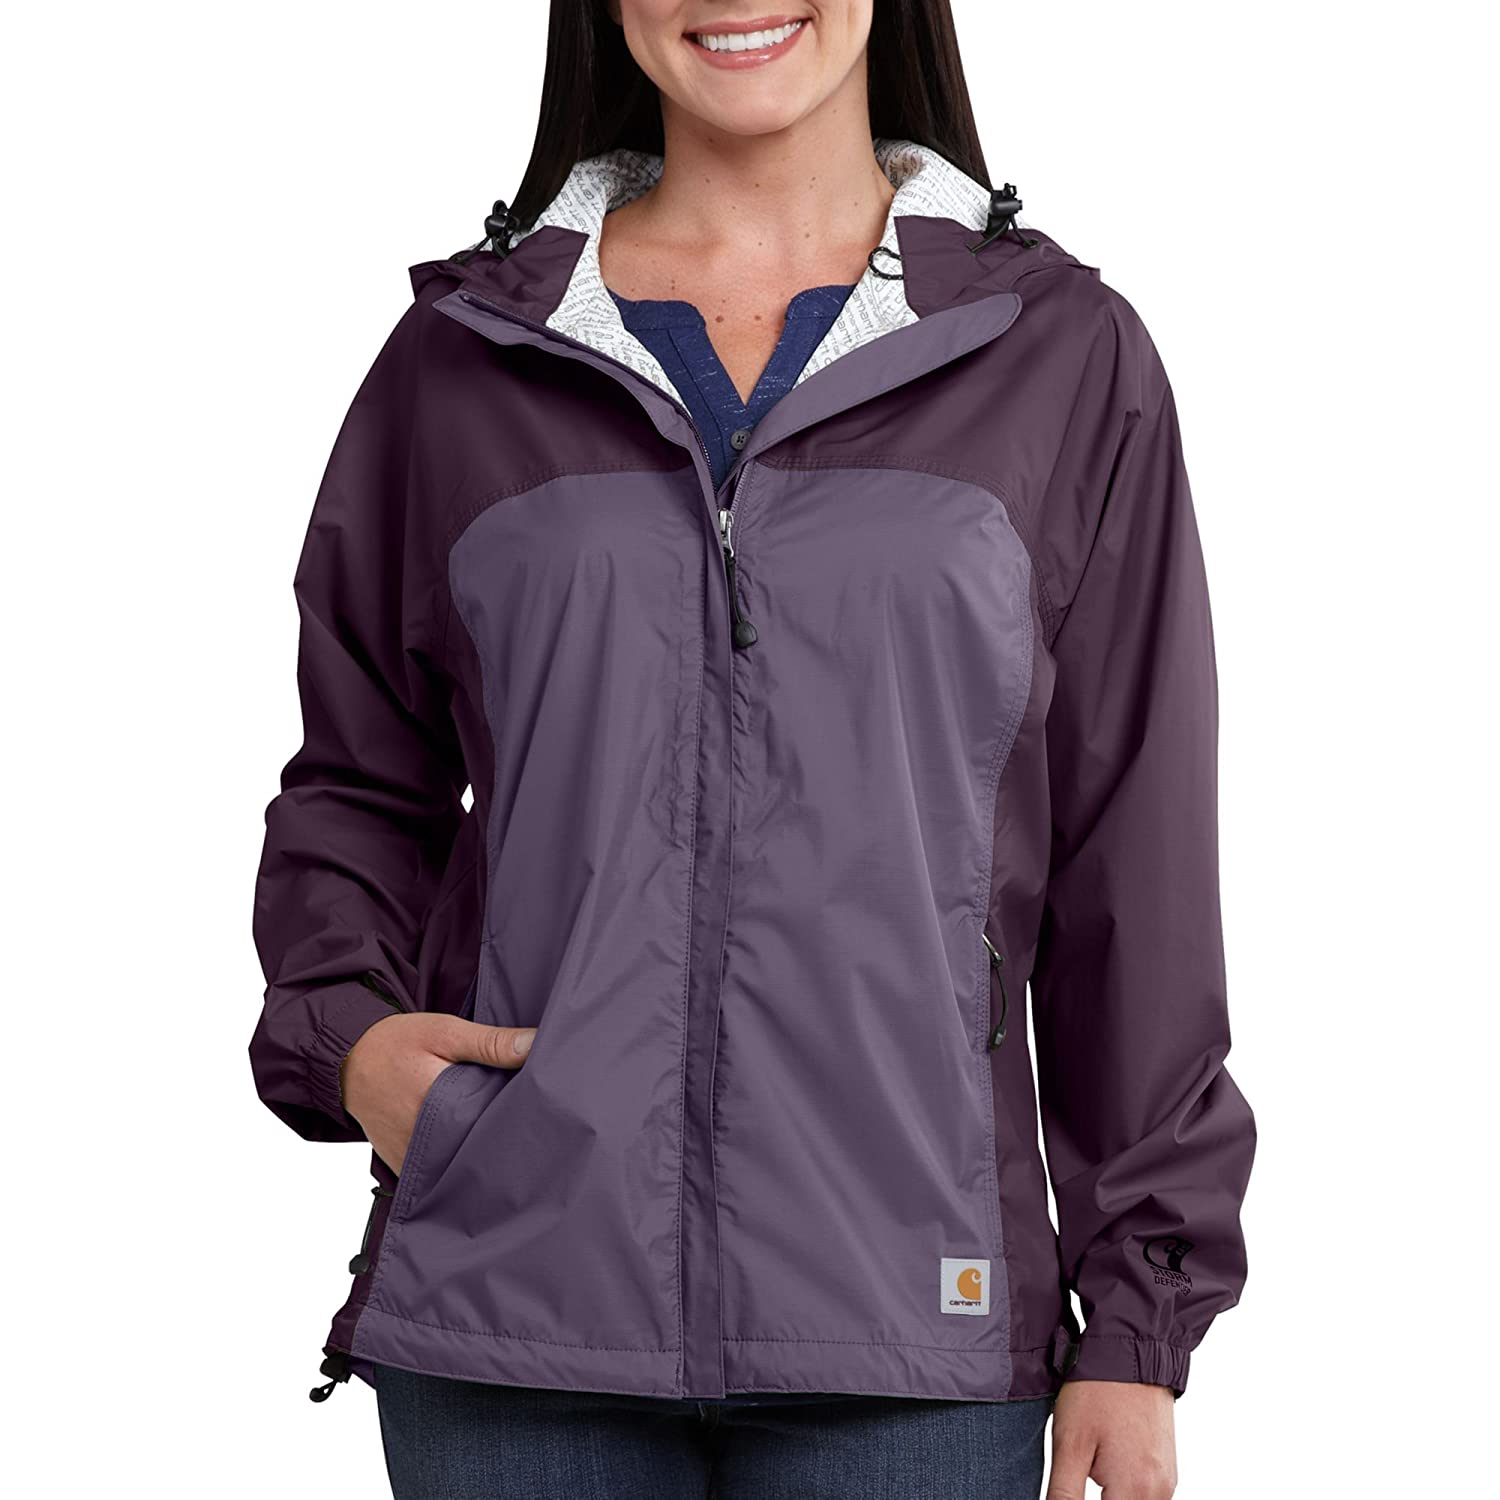 Carhartt Mujer Mountrail Impermeable Transpirable Cremallera ...